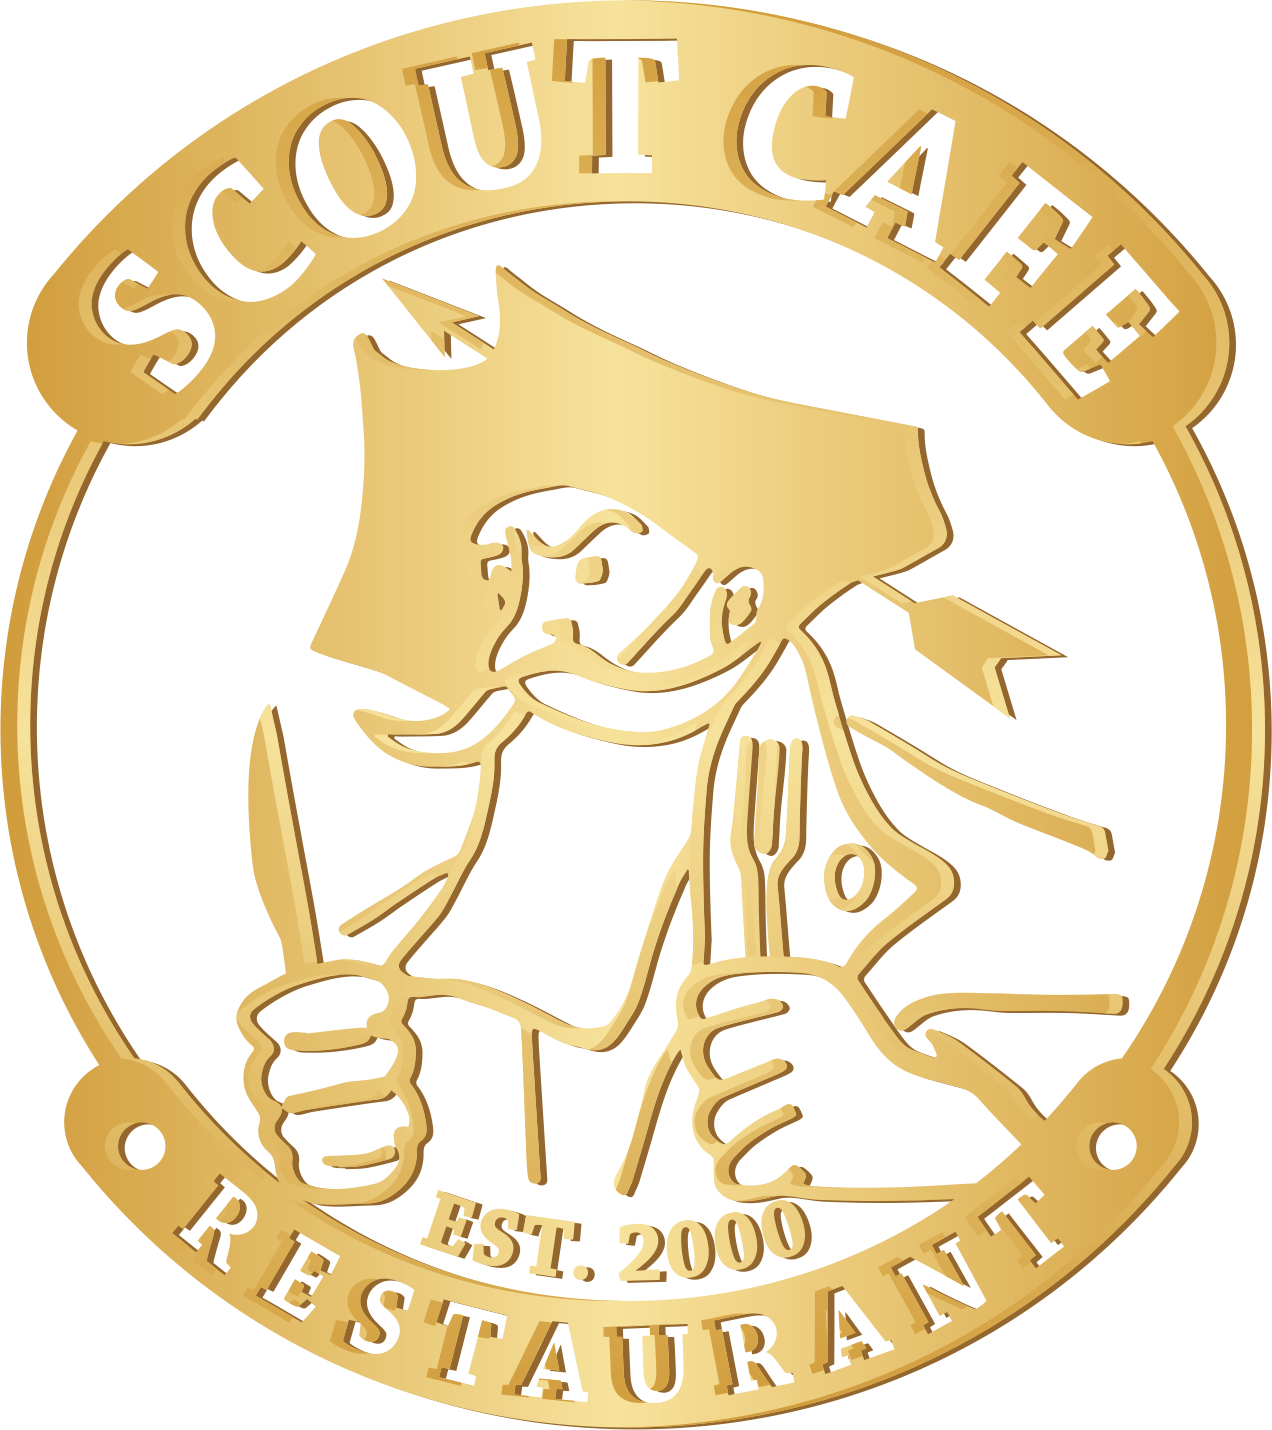 Scout Cafe & Restaurant